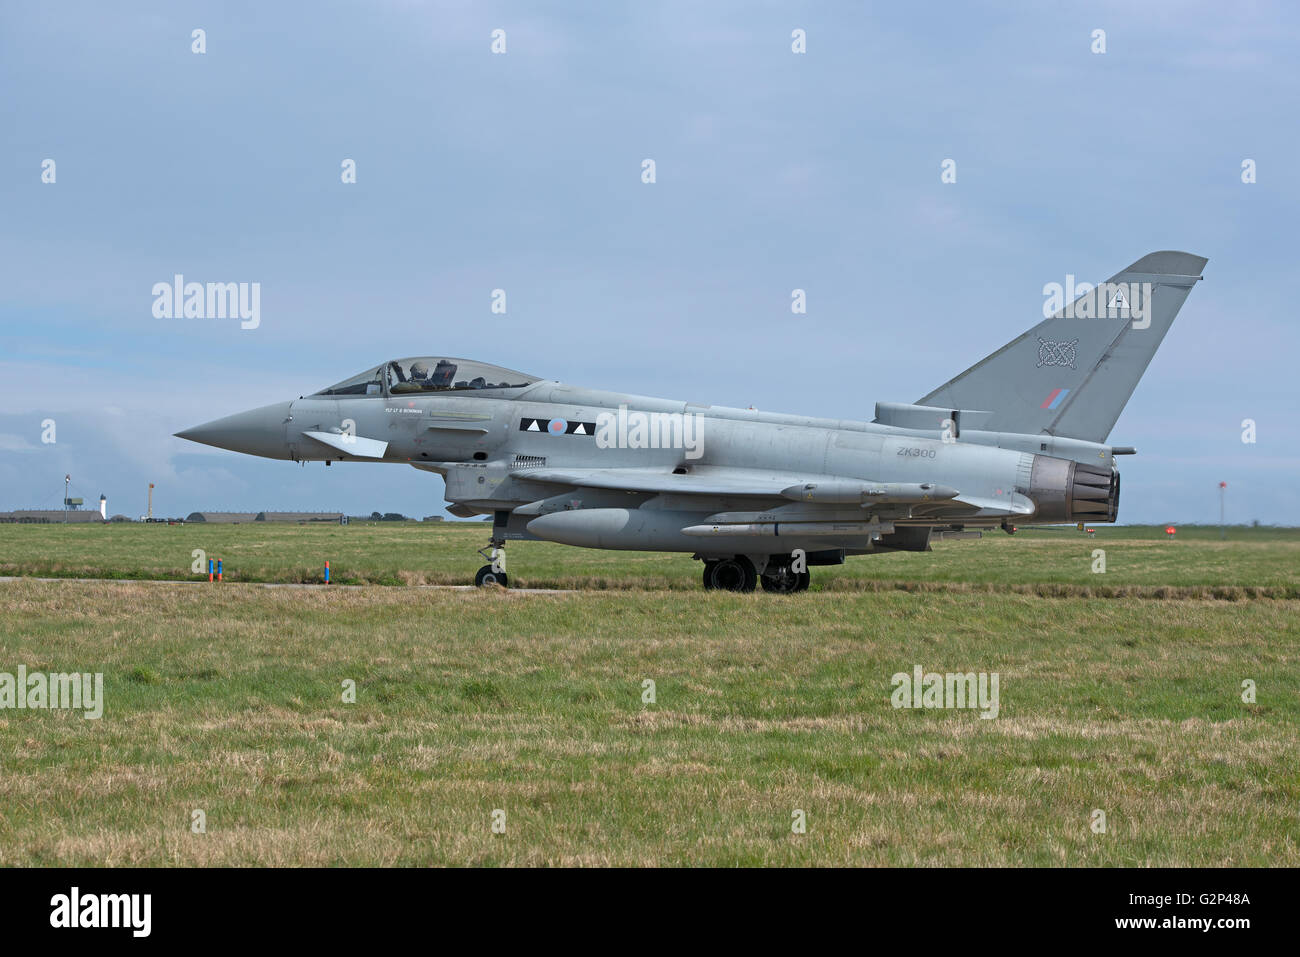 RAF Eurofighter FRG4 Typhoon twin engined Jet Military fighter Aircraft.  SCO 11,257. - Stock Image